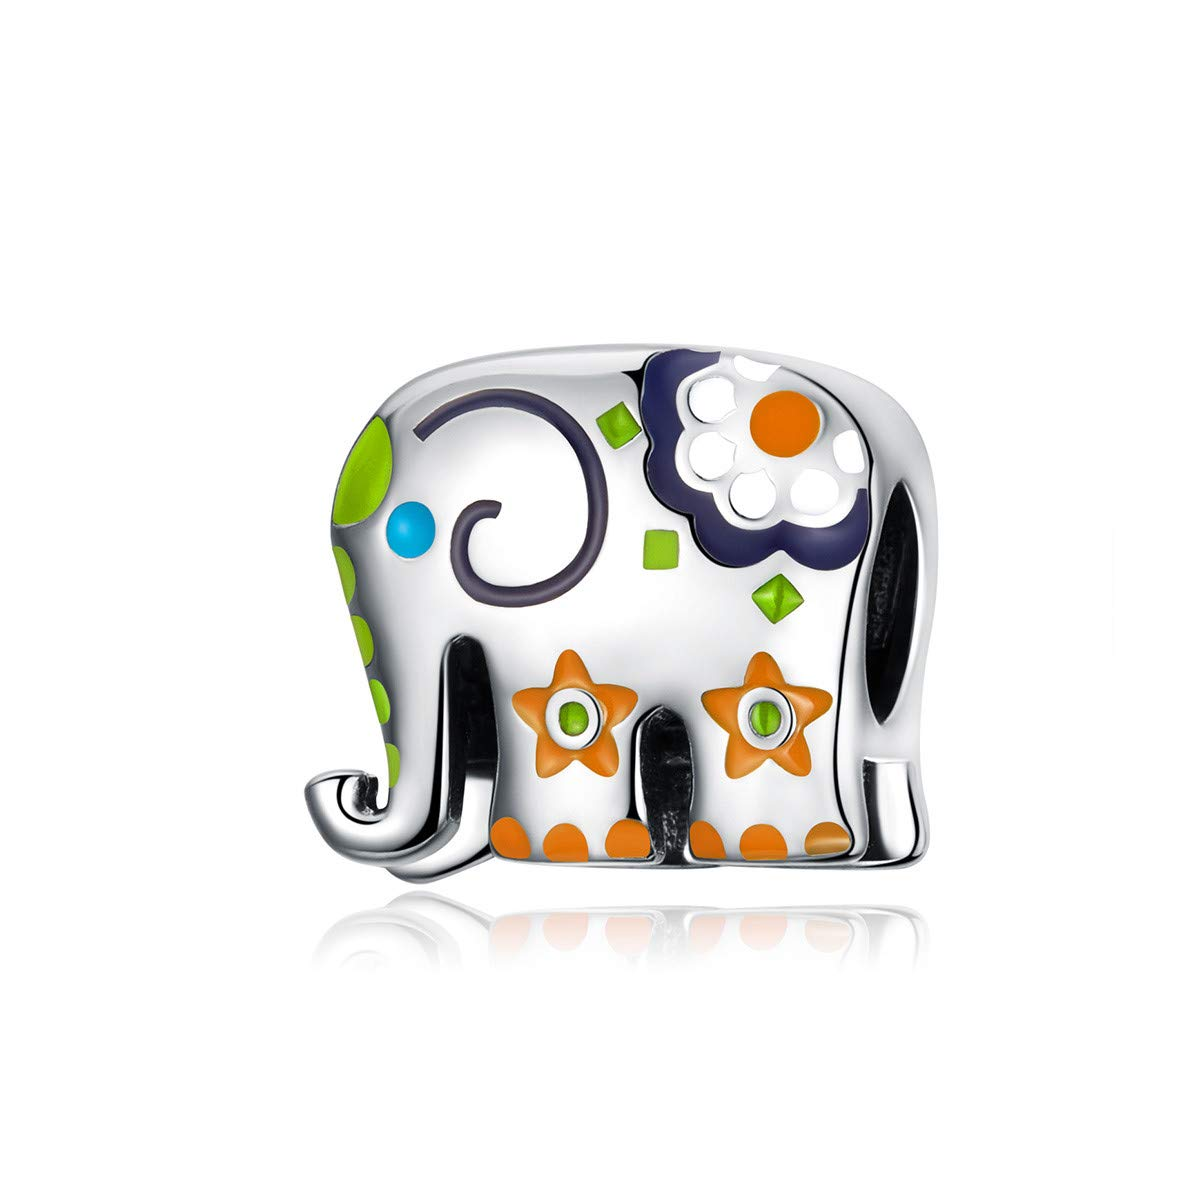 BAMOER 925 Sterling Silver Charm for Women 925 Sterling Silver Animal Charms for DIY Making Jewelry Bracelet